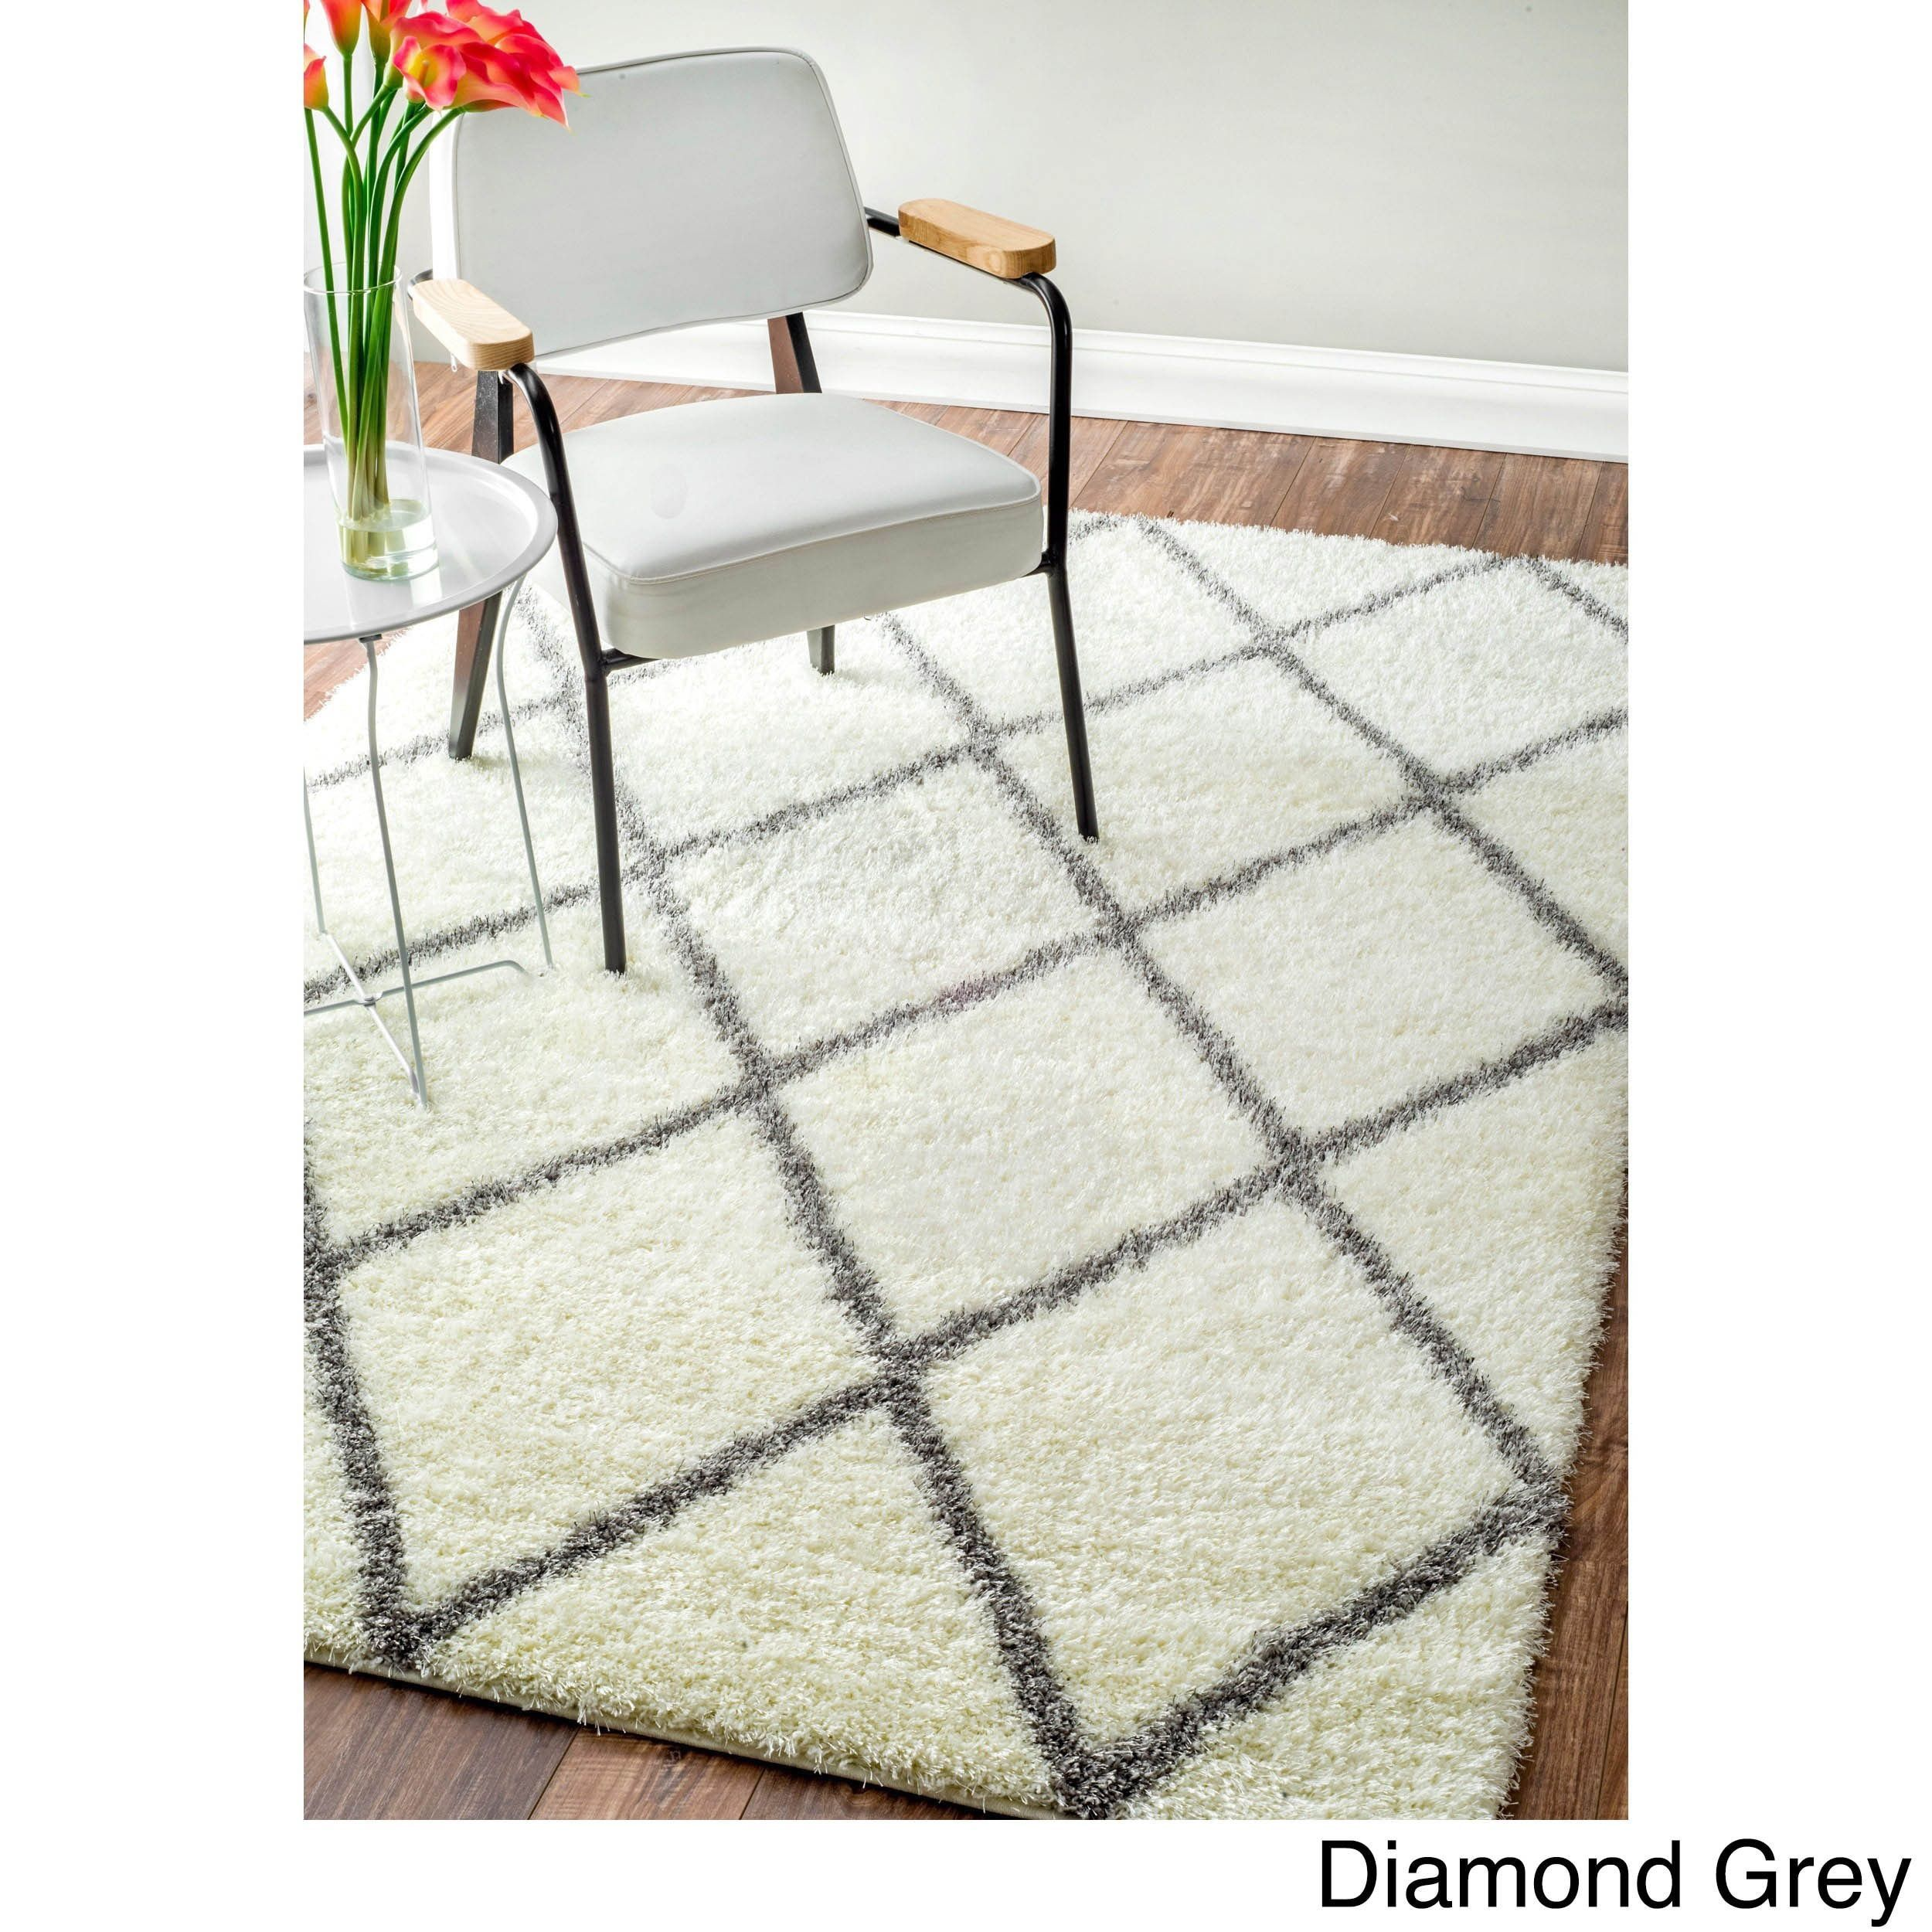 Nuloom Soft And Plush Moroccan Trellis Or Diamond Rug 8 X 10